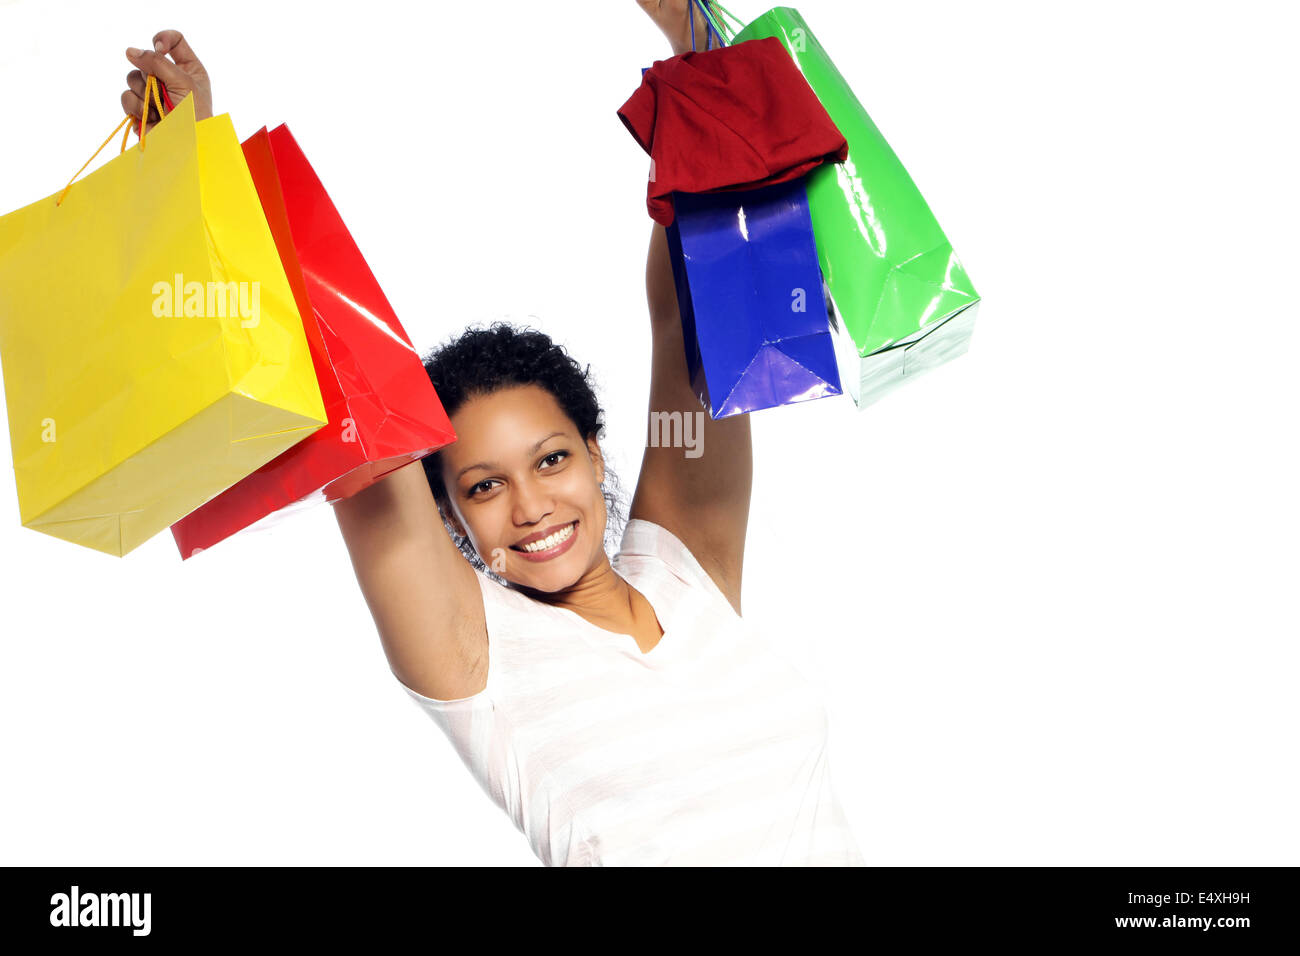 Rejoicing woman with her shopping - Stock Image